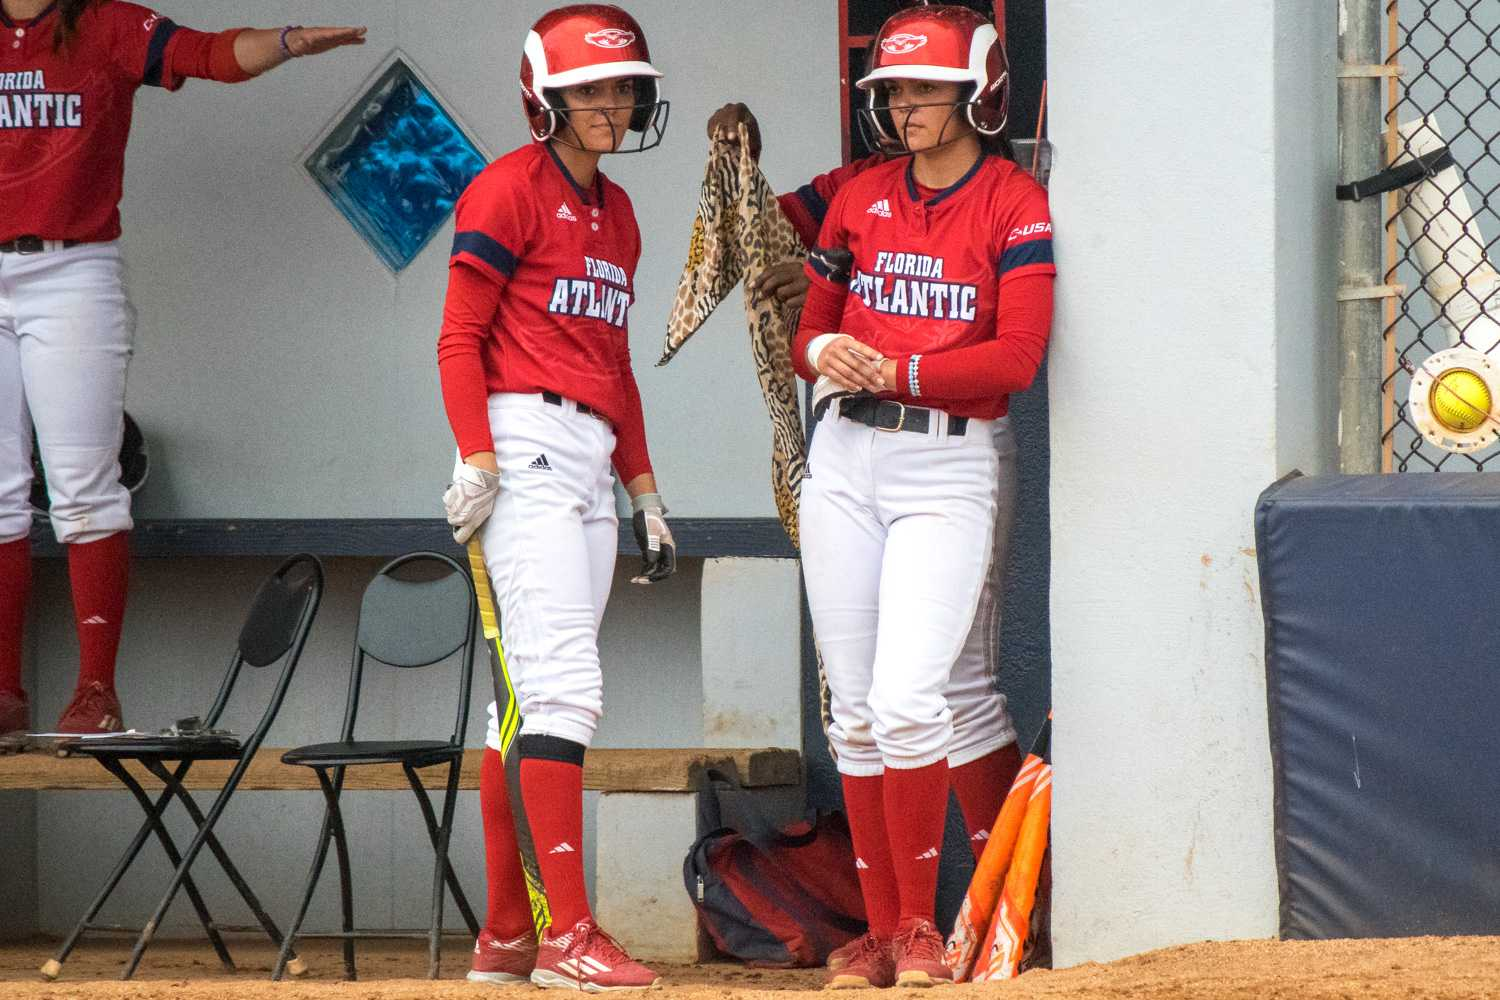 Christina (left) and Melissa Martinez wait in the dugout for their respective turns at bat. Ryan Lynch | Multimedia Editor